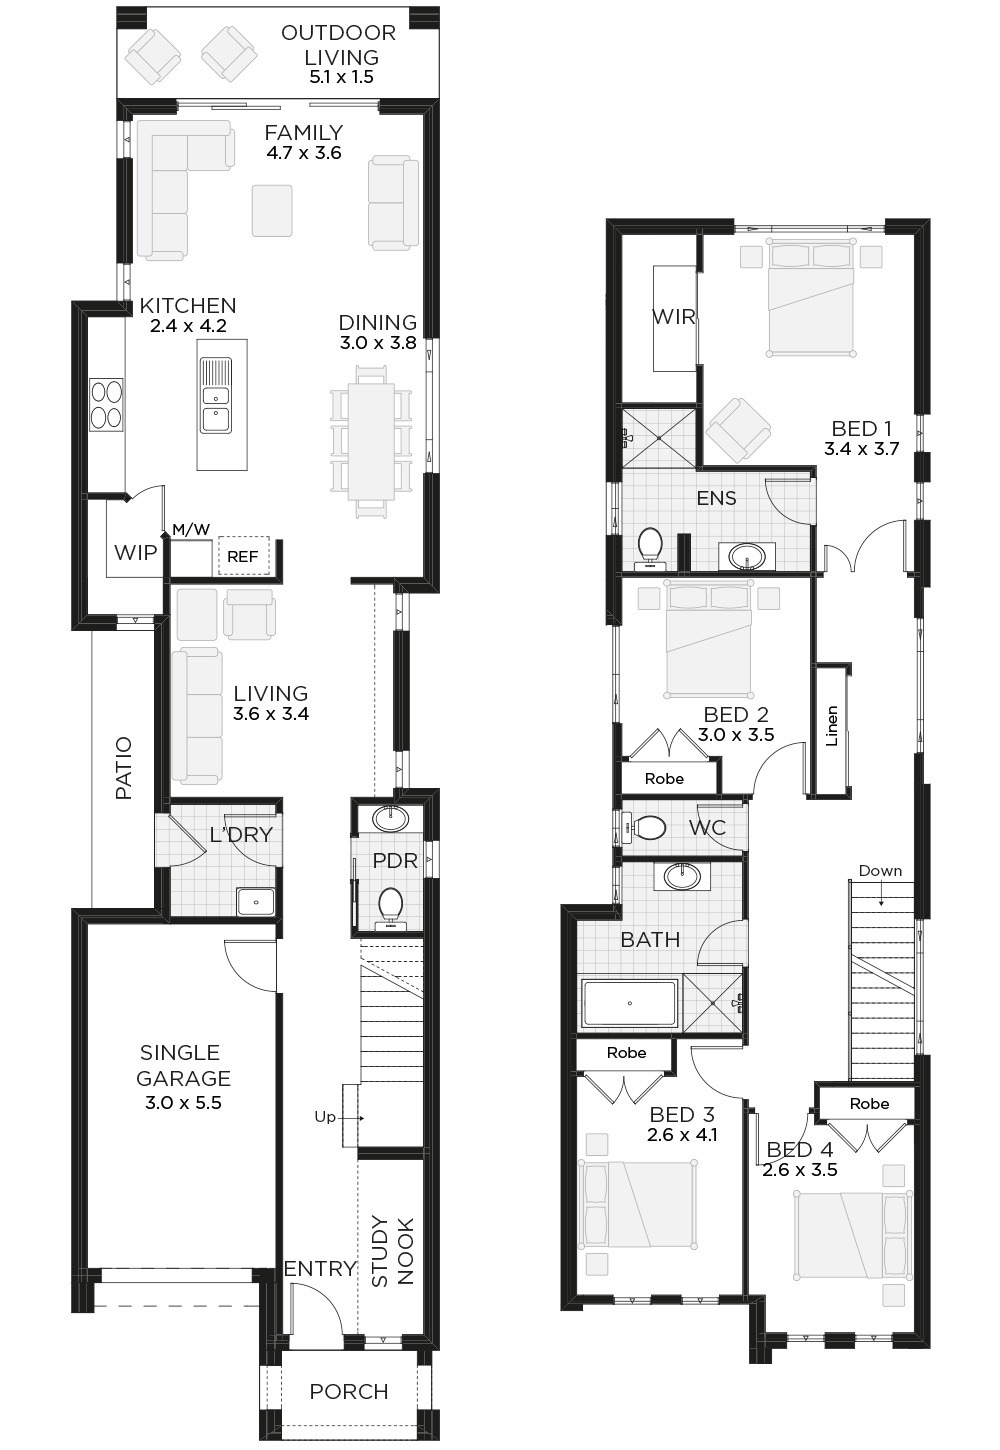 Townhouse Plans Narrow Lot Awesome Narrow Lot Home Benefits 3 Perks Of Owning Narrow Lot Homes